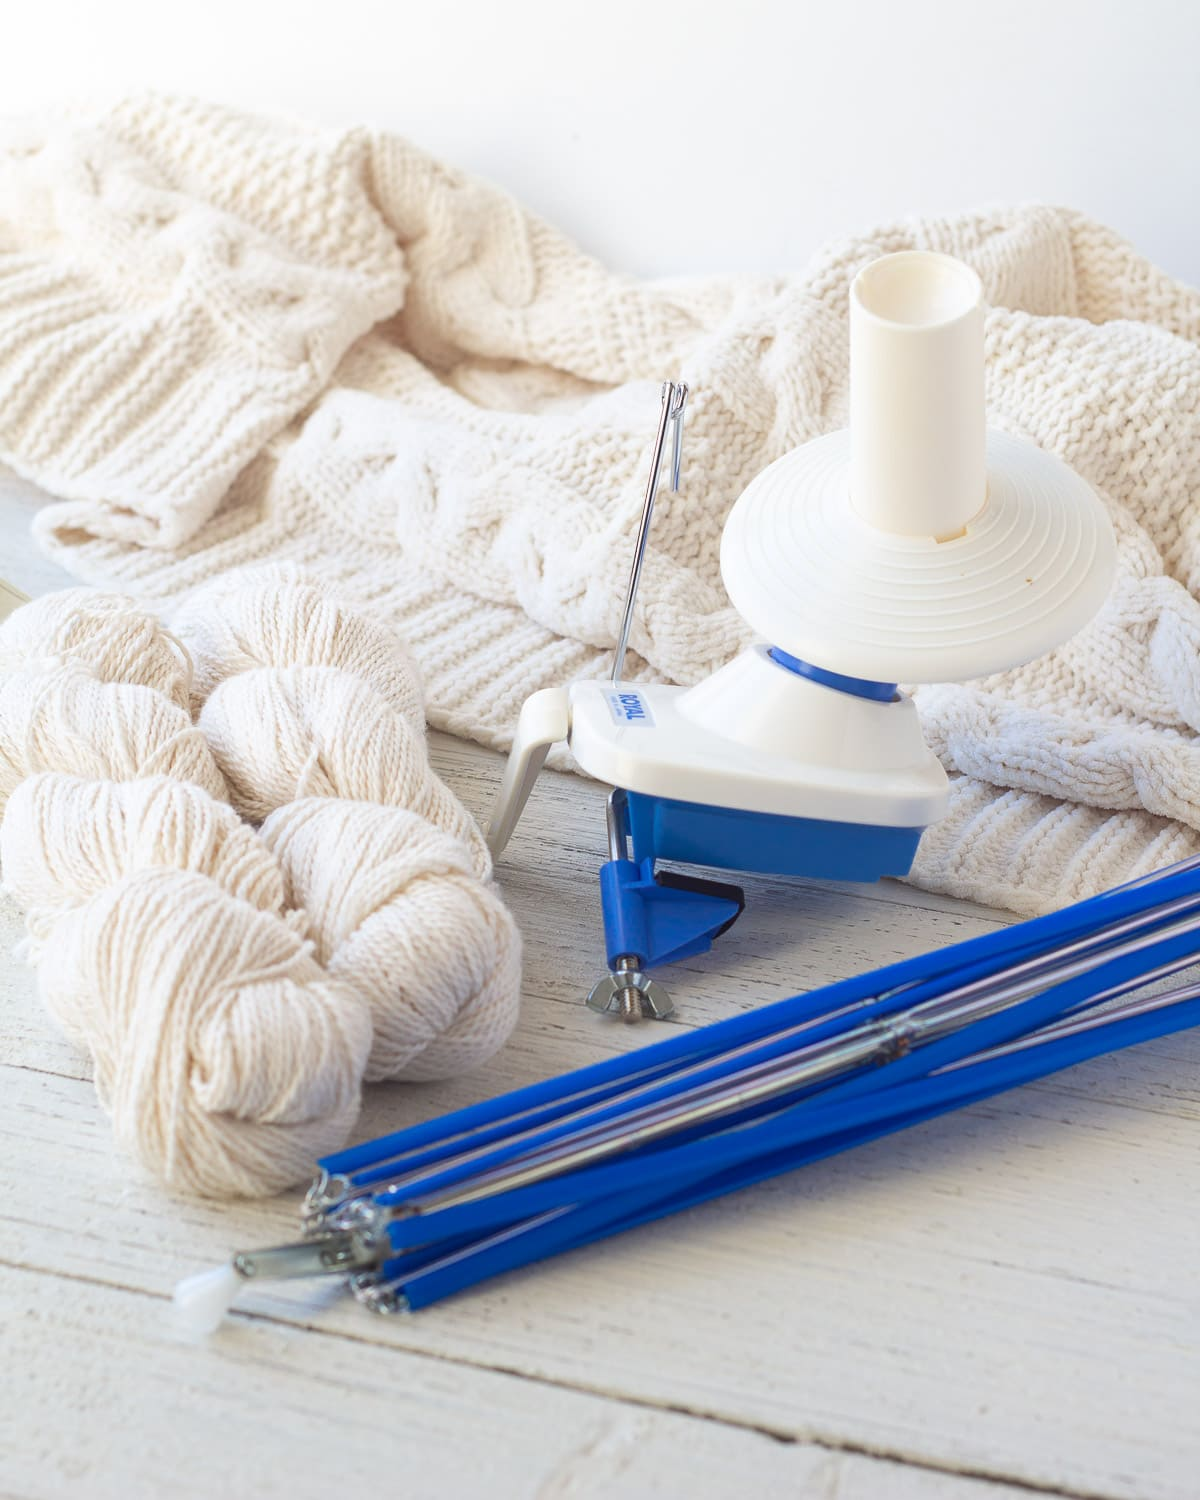 A swift, ball winder, and white yarn for knitting.